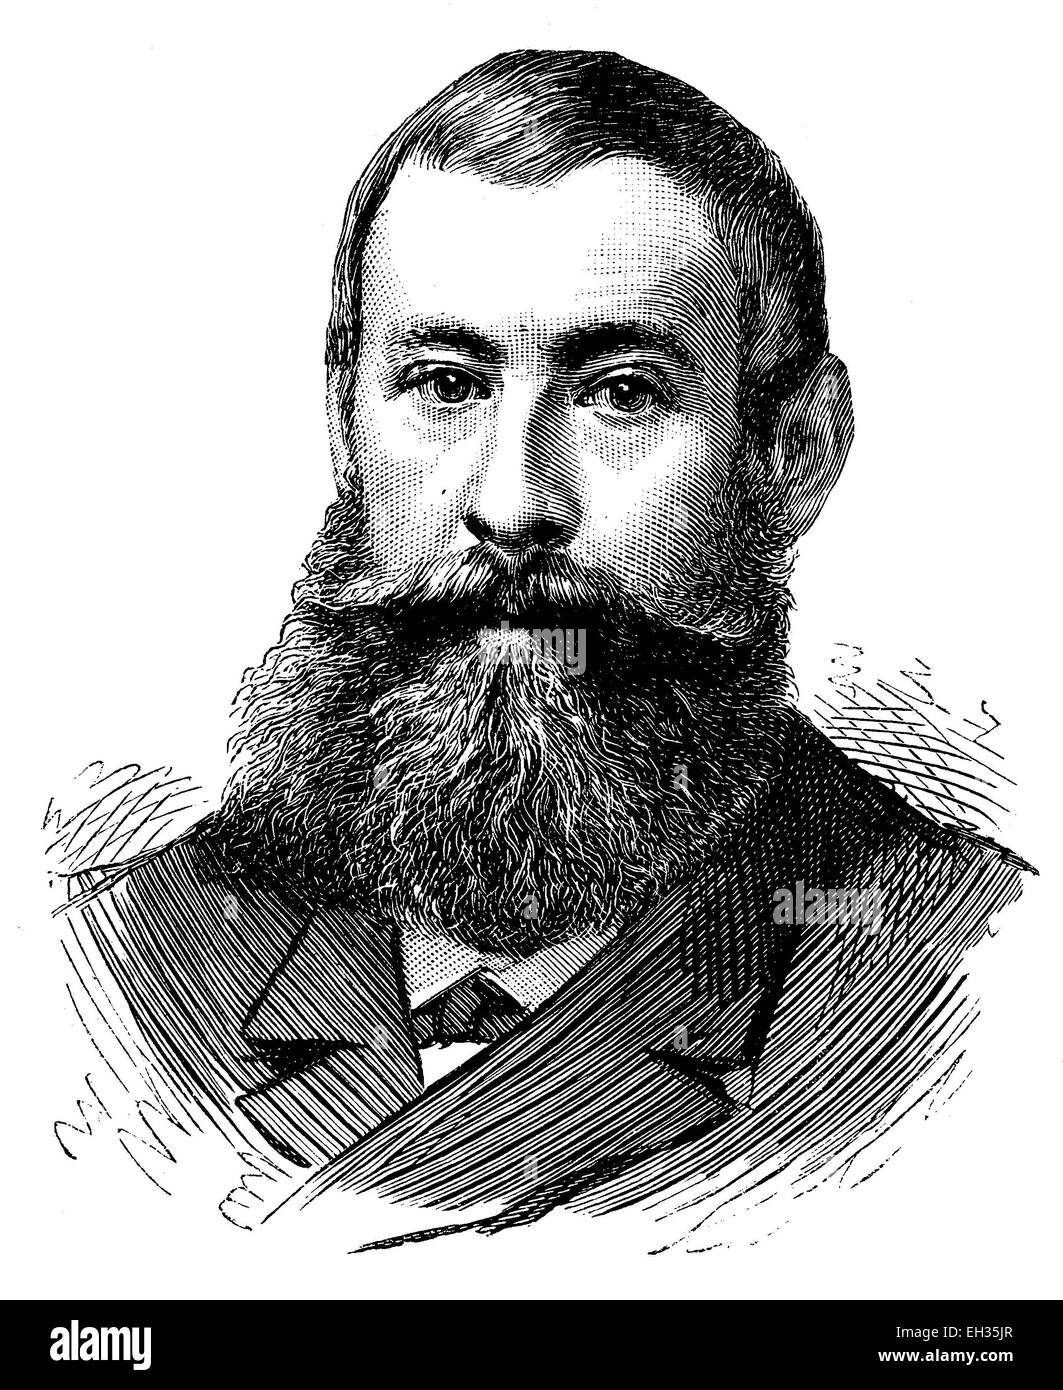 Daniel Wilson, 1840-1919, French politician, woodcut, historical engraving, 1880 - Stock Image